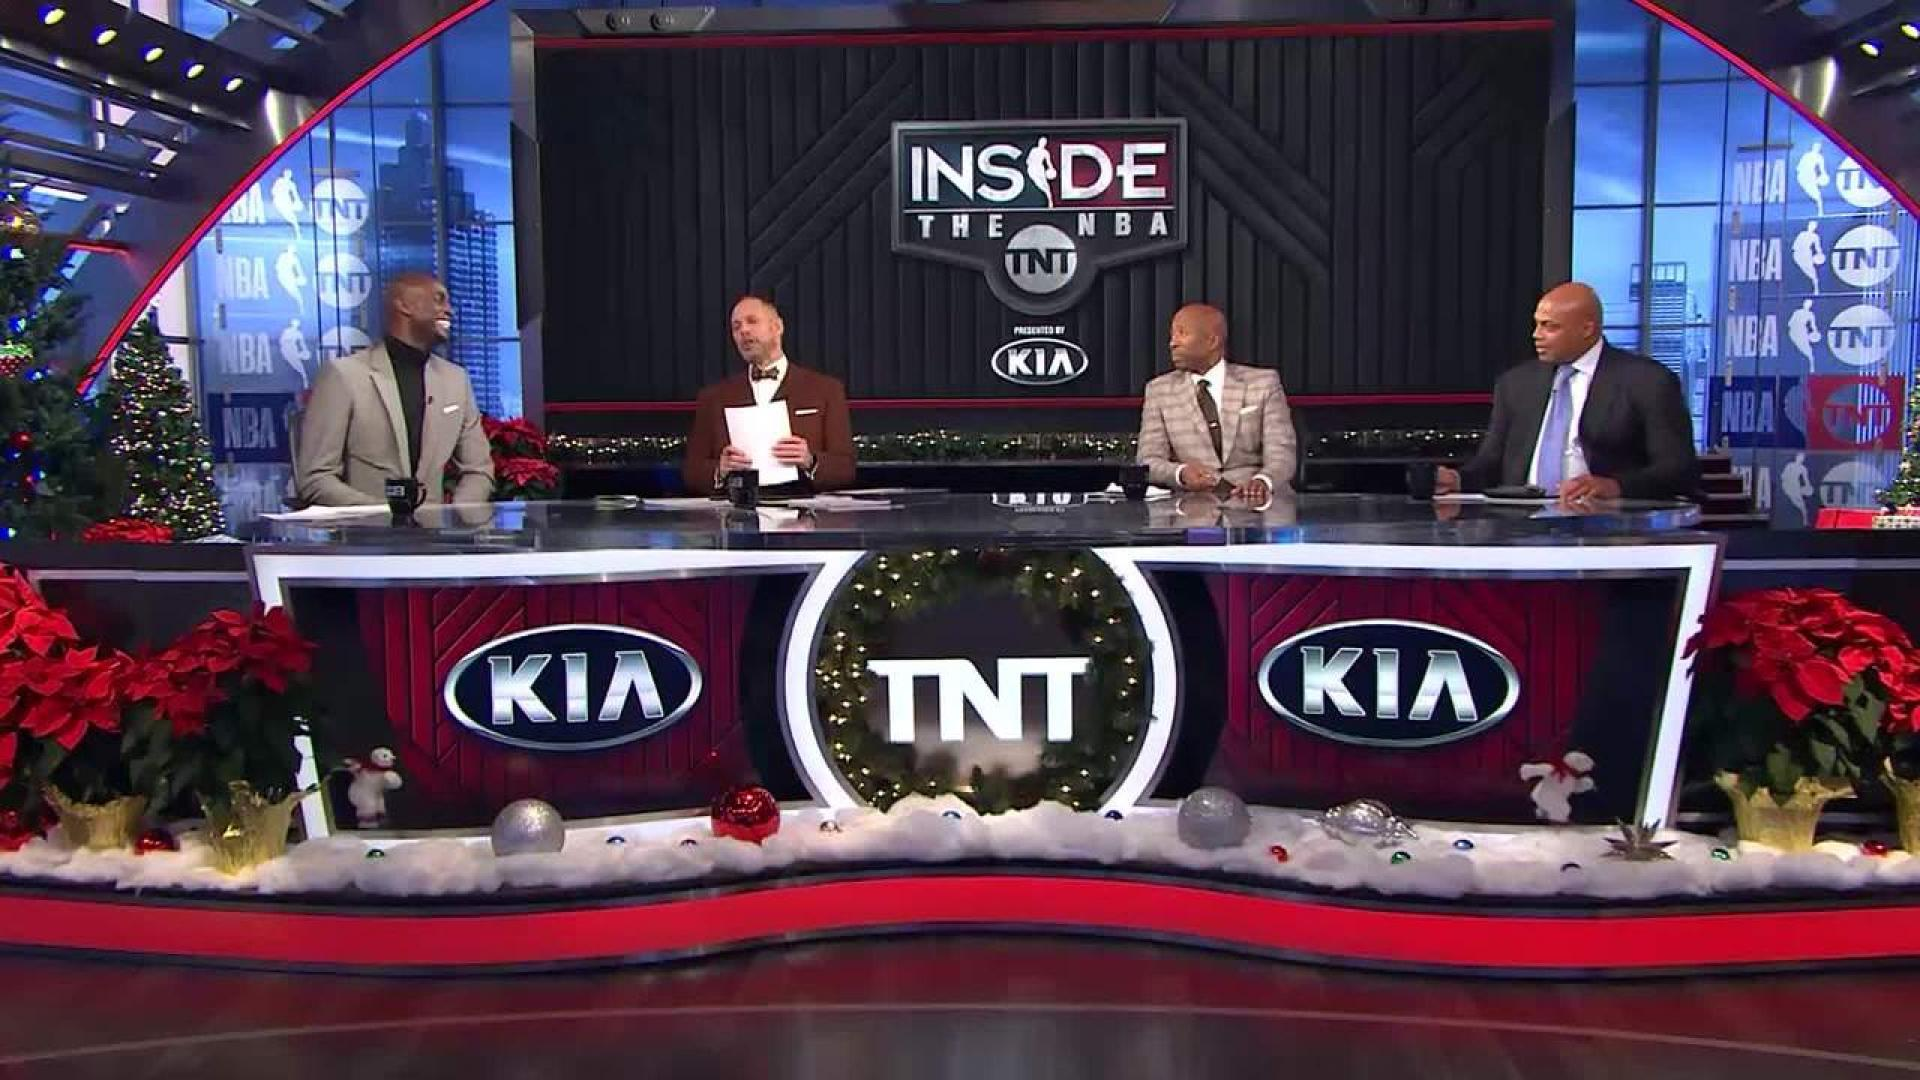 Nba inside stuff tv show: news, videos, full episodes and more.